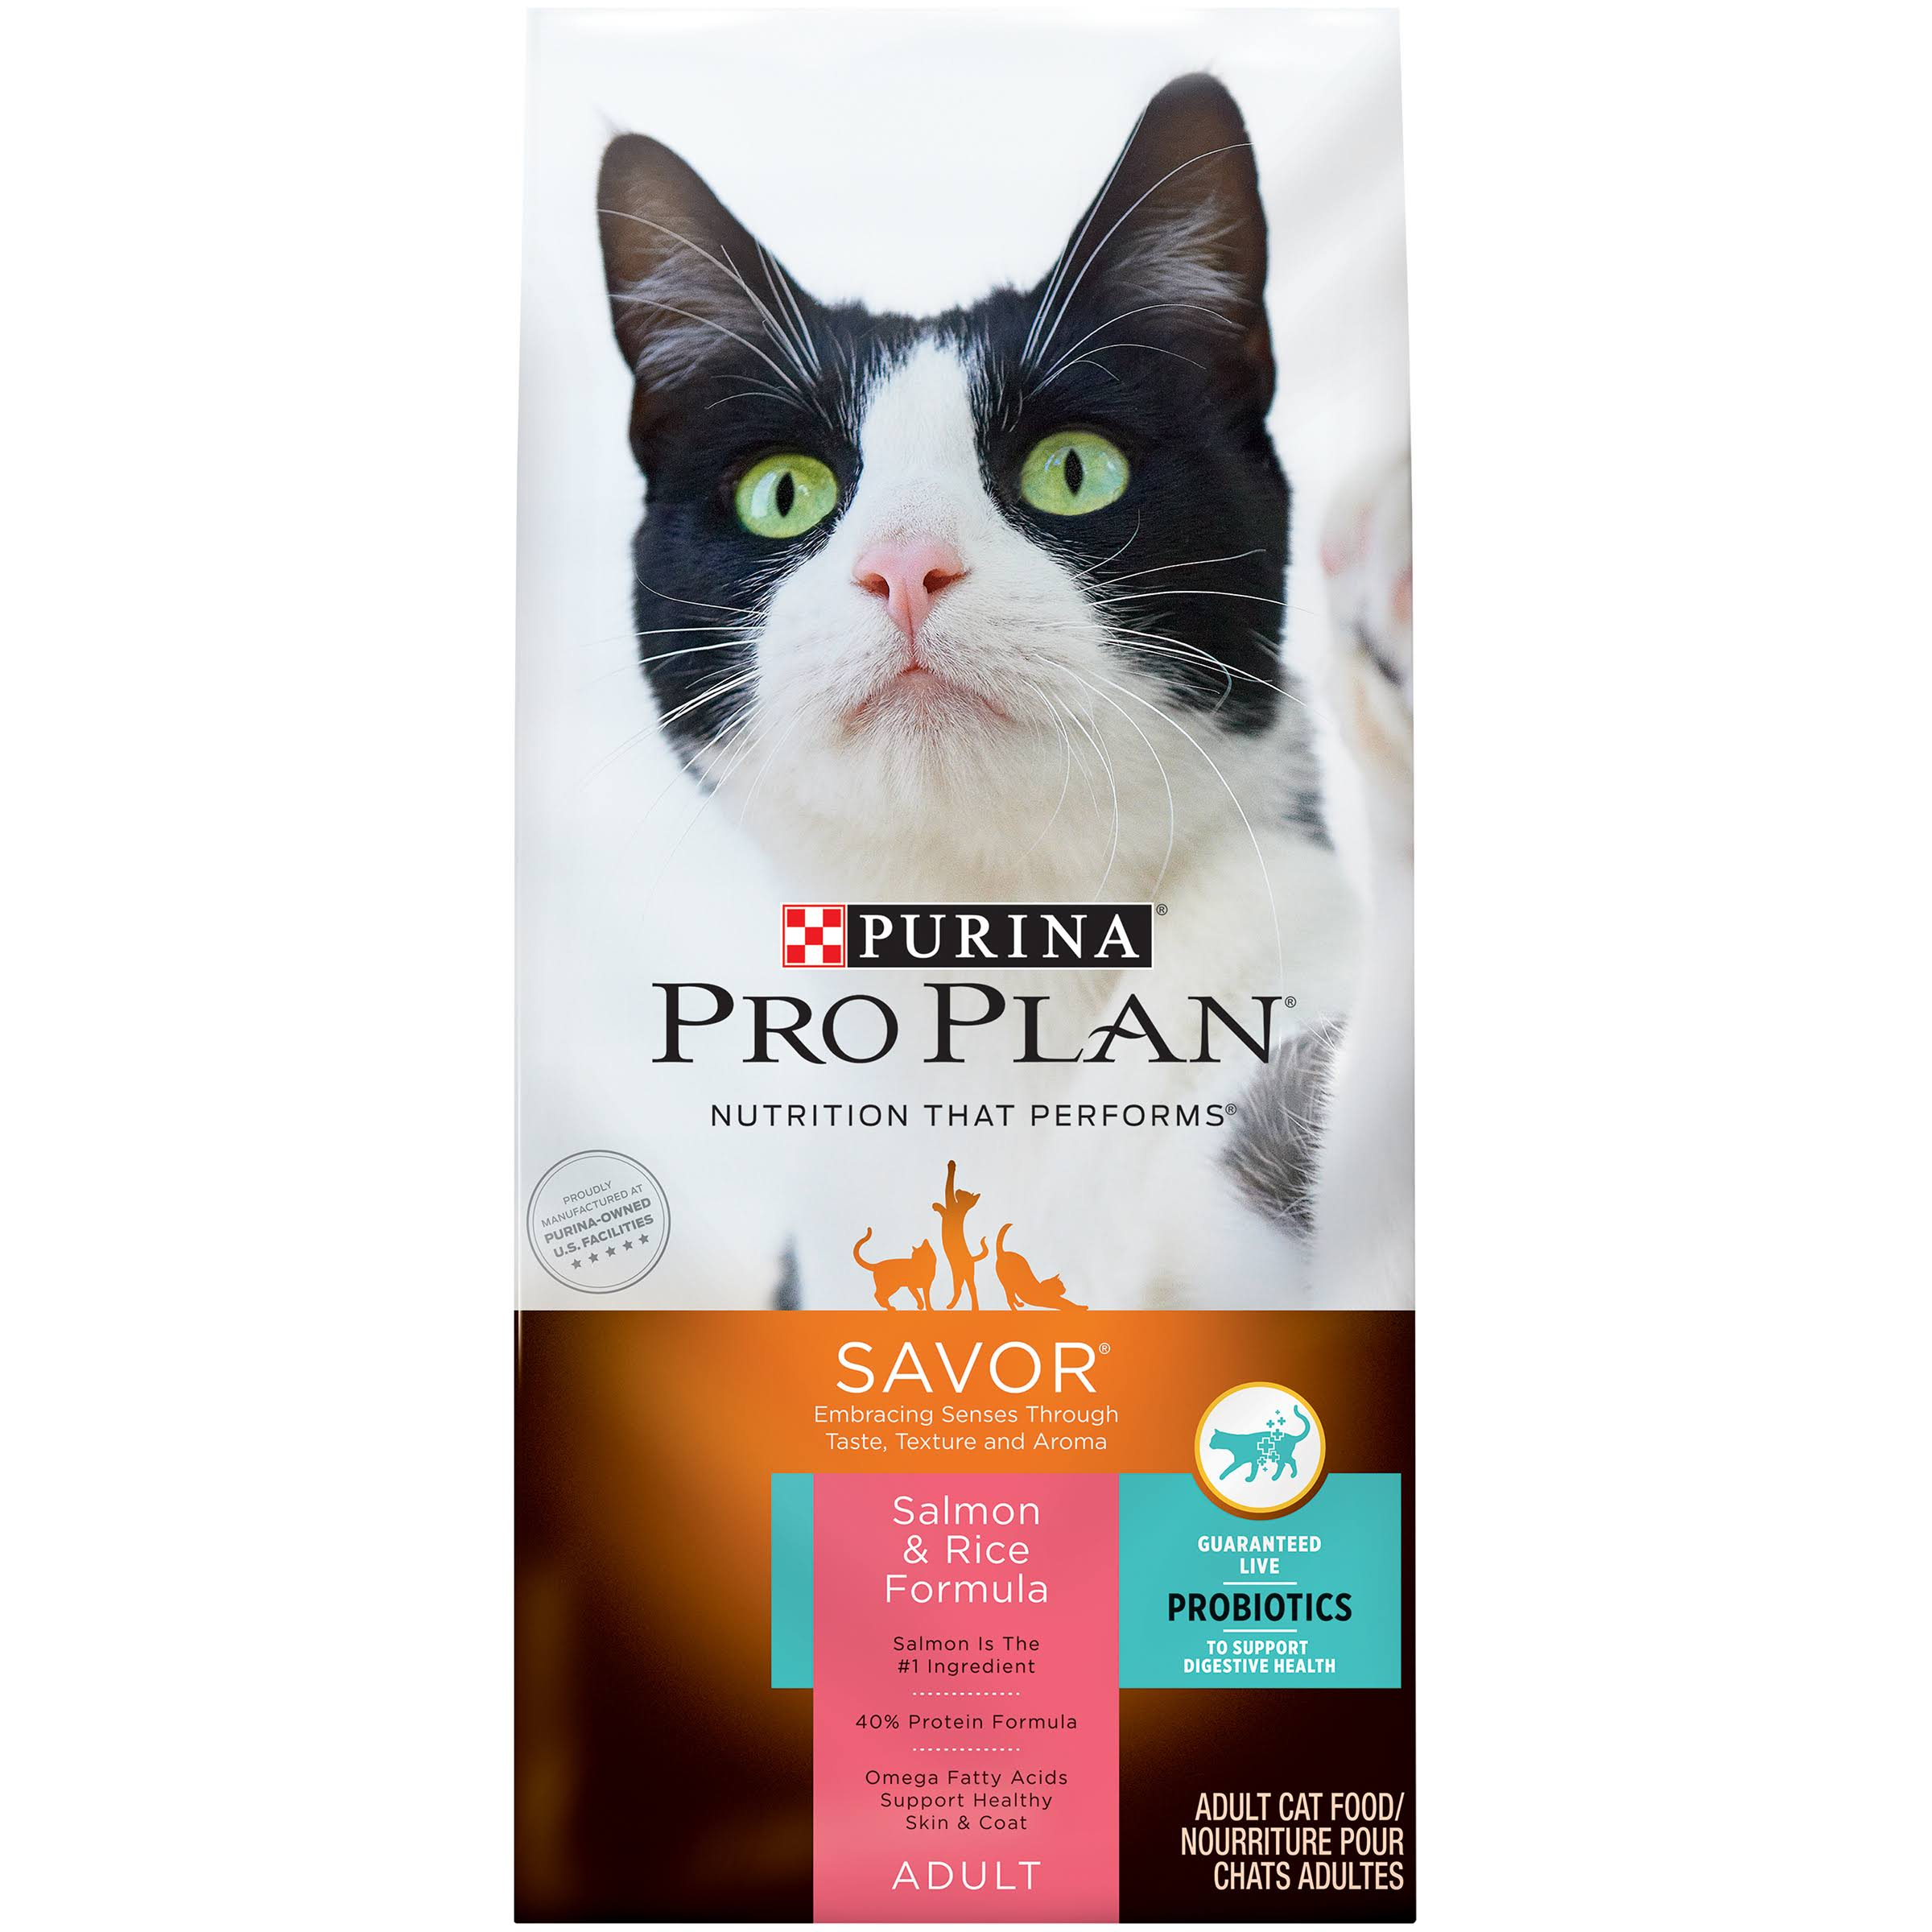 Purina Pro Plan Dry Cat Food - Salmon and Rice Formula, 7lbs